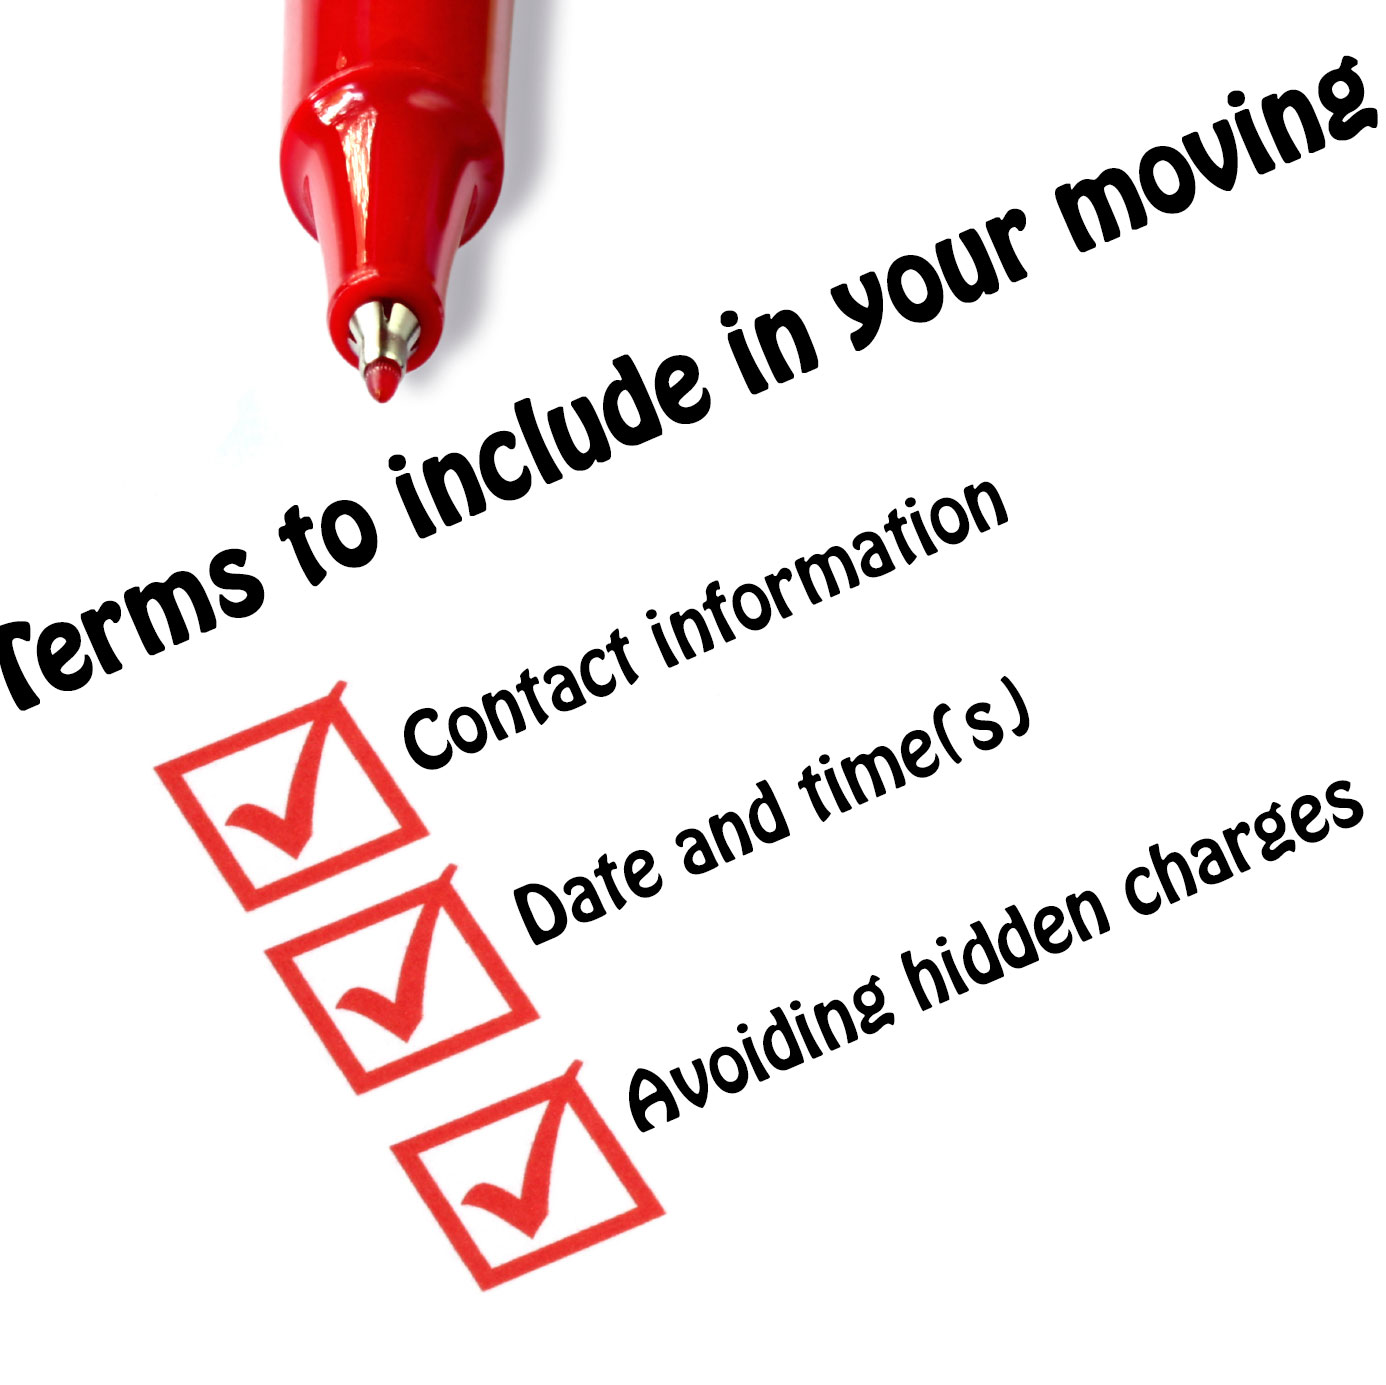 Terms to Include in Your Moving Contract